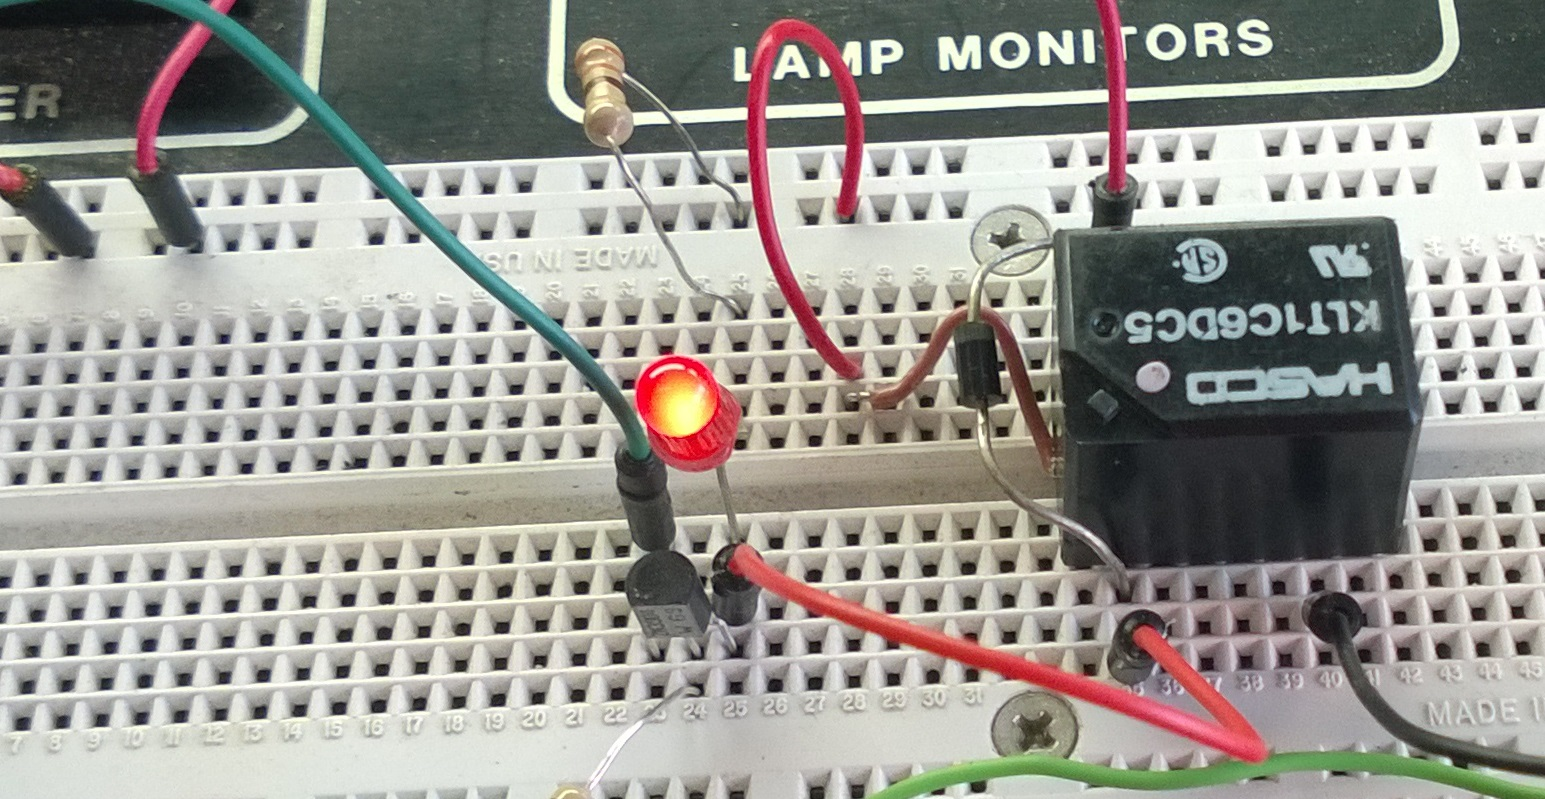 Transistor Bistable Flip Flop Circuits Electronic Circuit Projects